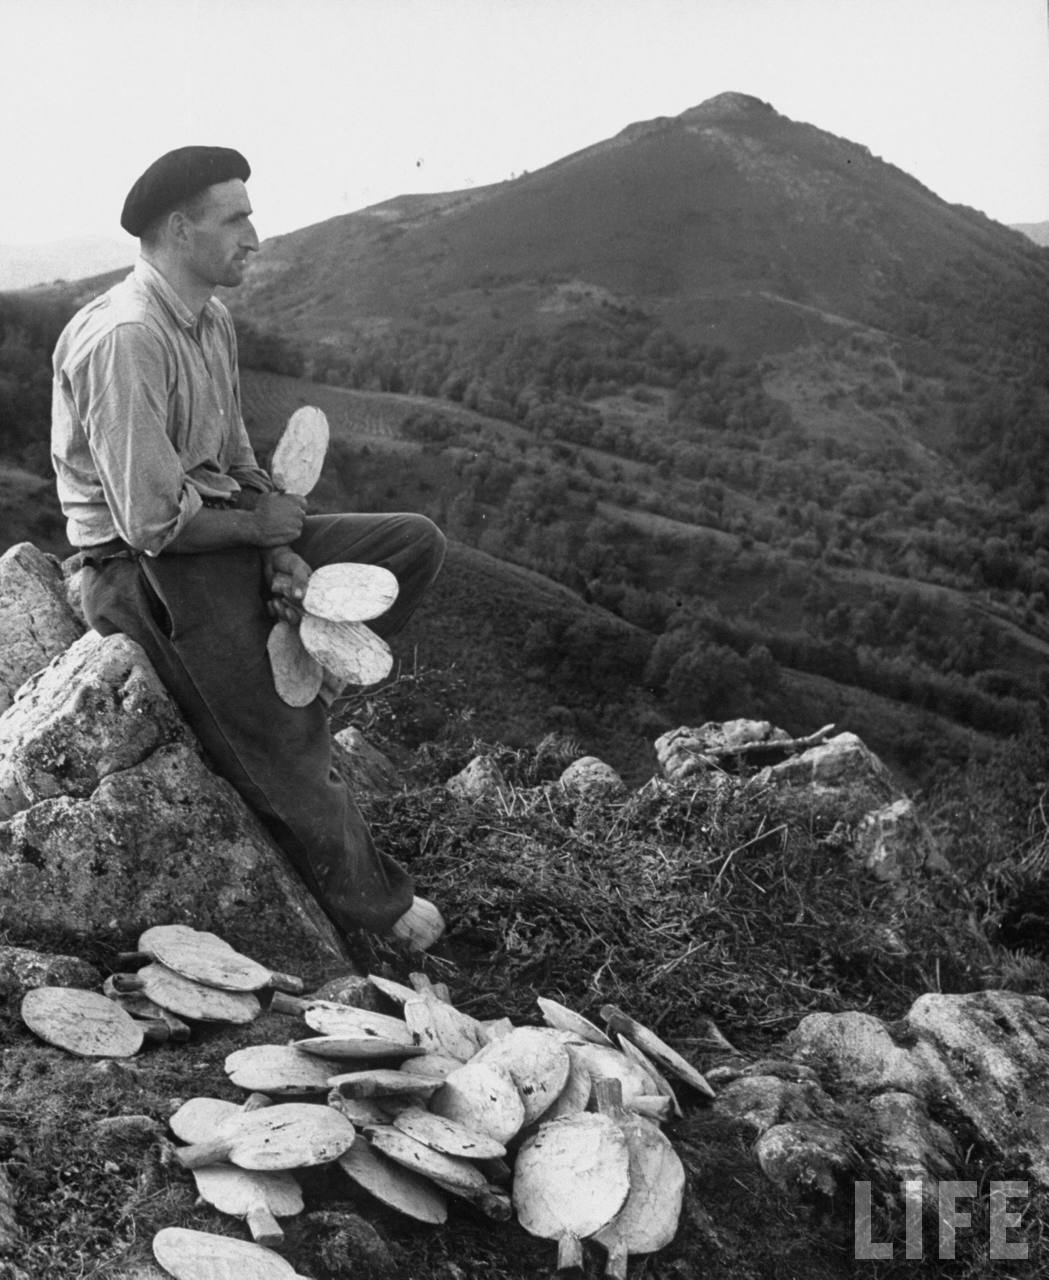 A man sitting in the hilly meadows holding palittes.